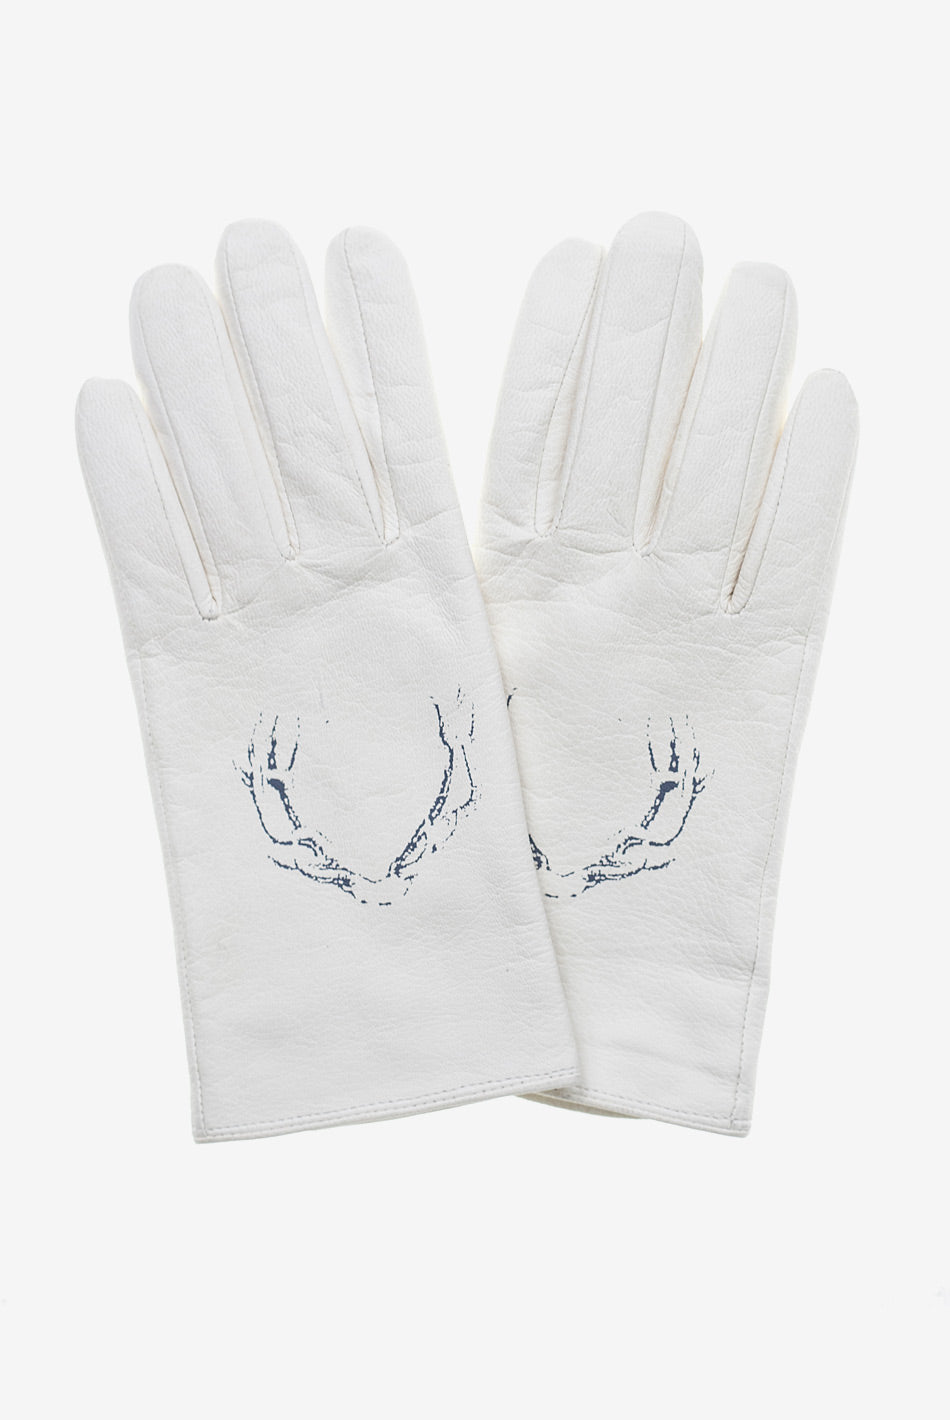 Claire Fraser's Riding Gloves